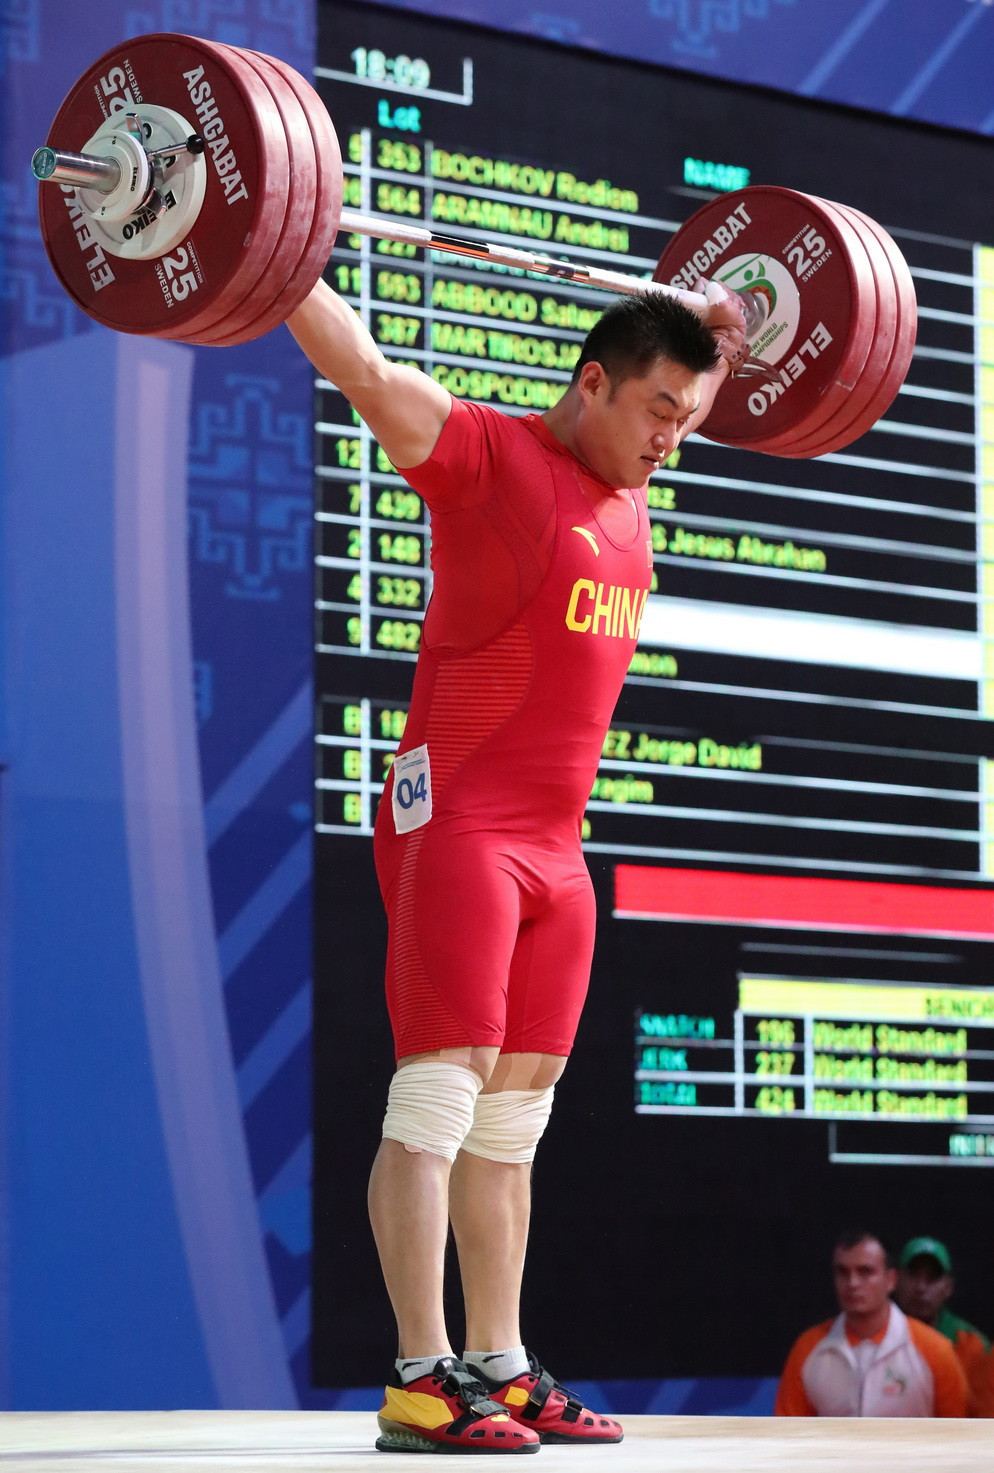 The silver medallist in the total was China's Yang Zhe ©IWF